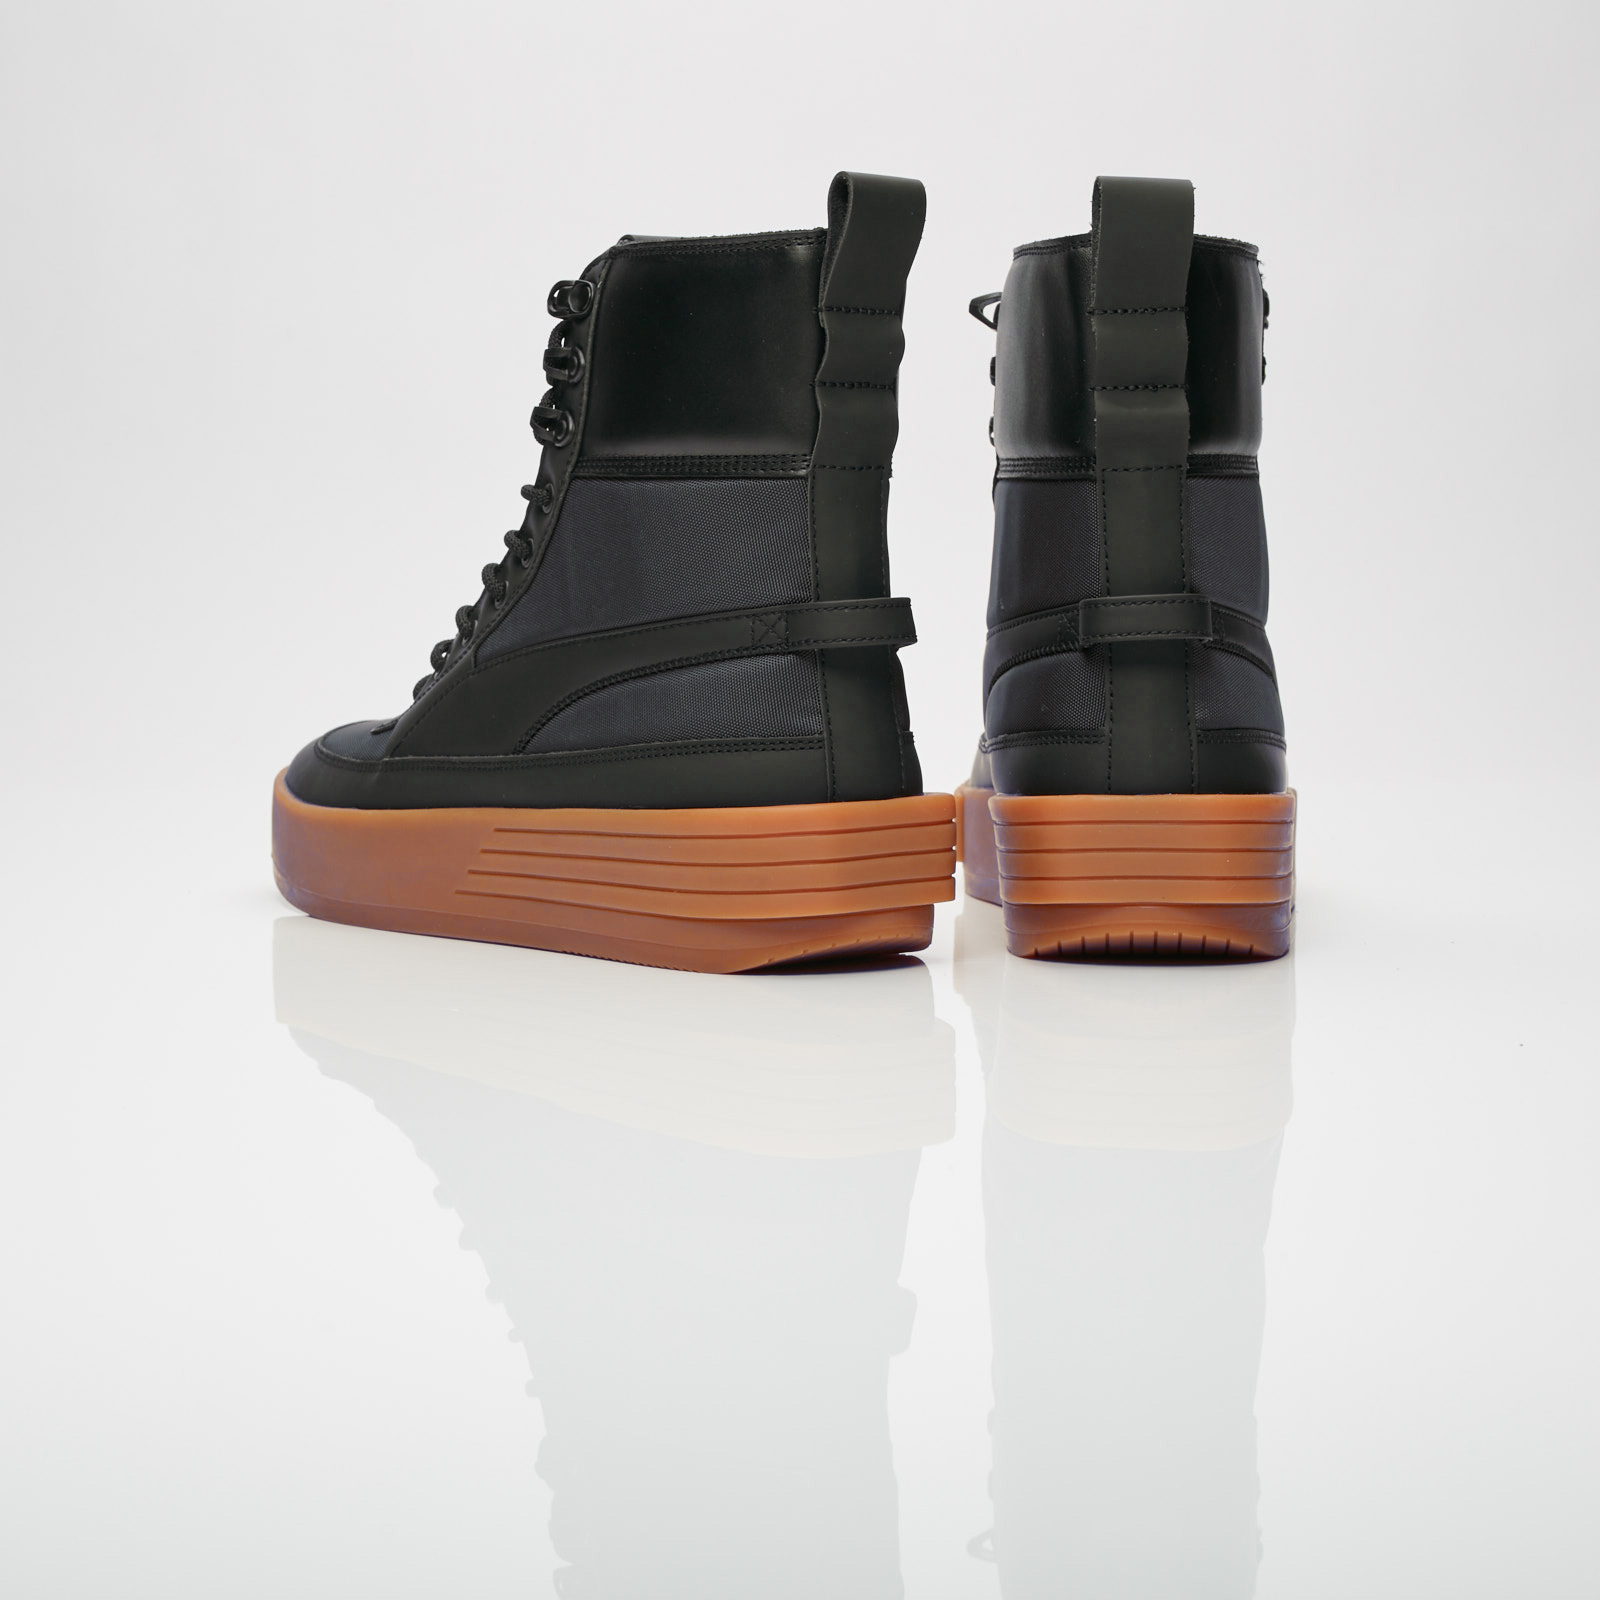 PUMA The WEEKND Suede High Top Sneakers Black 9.5 Military